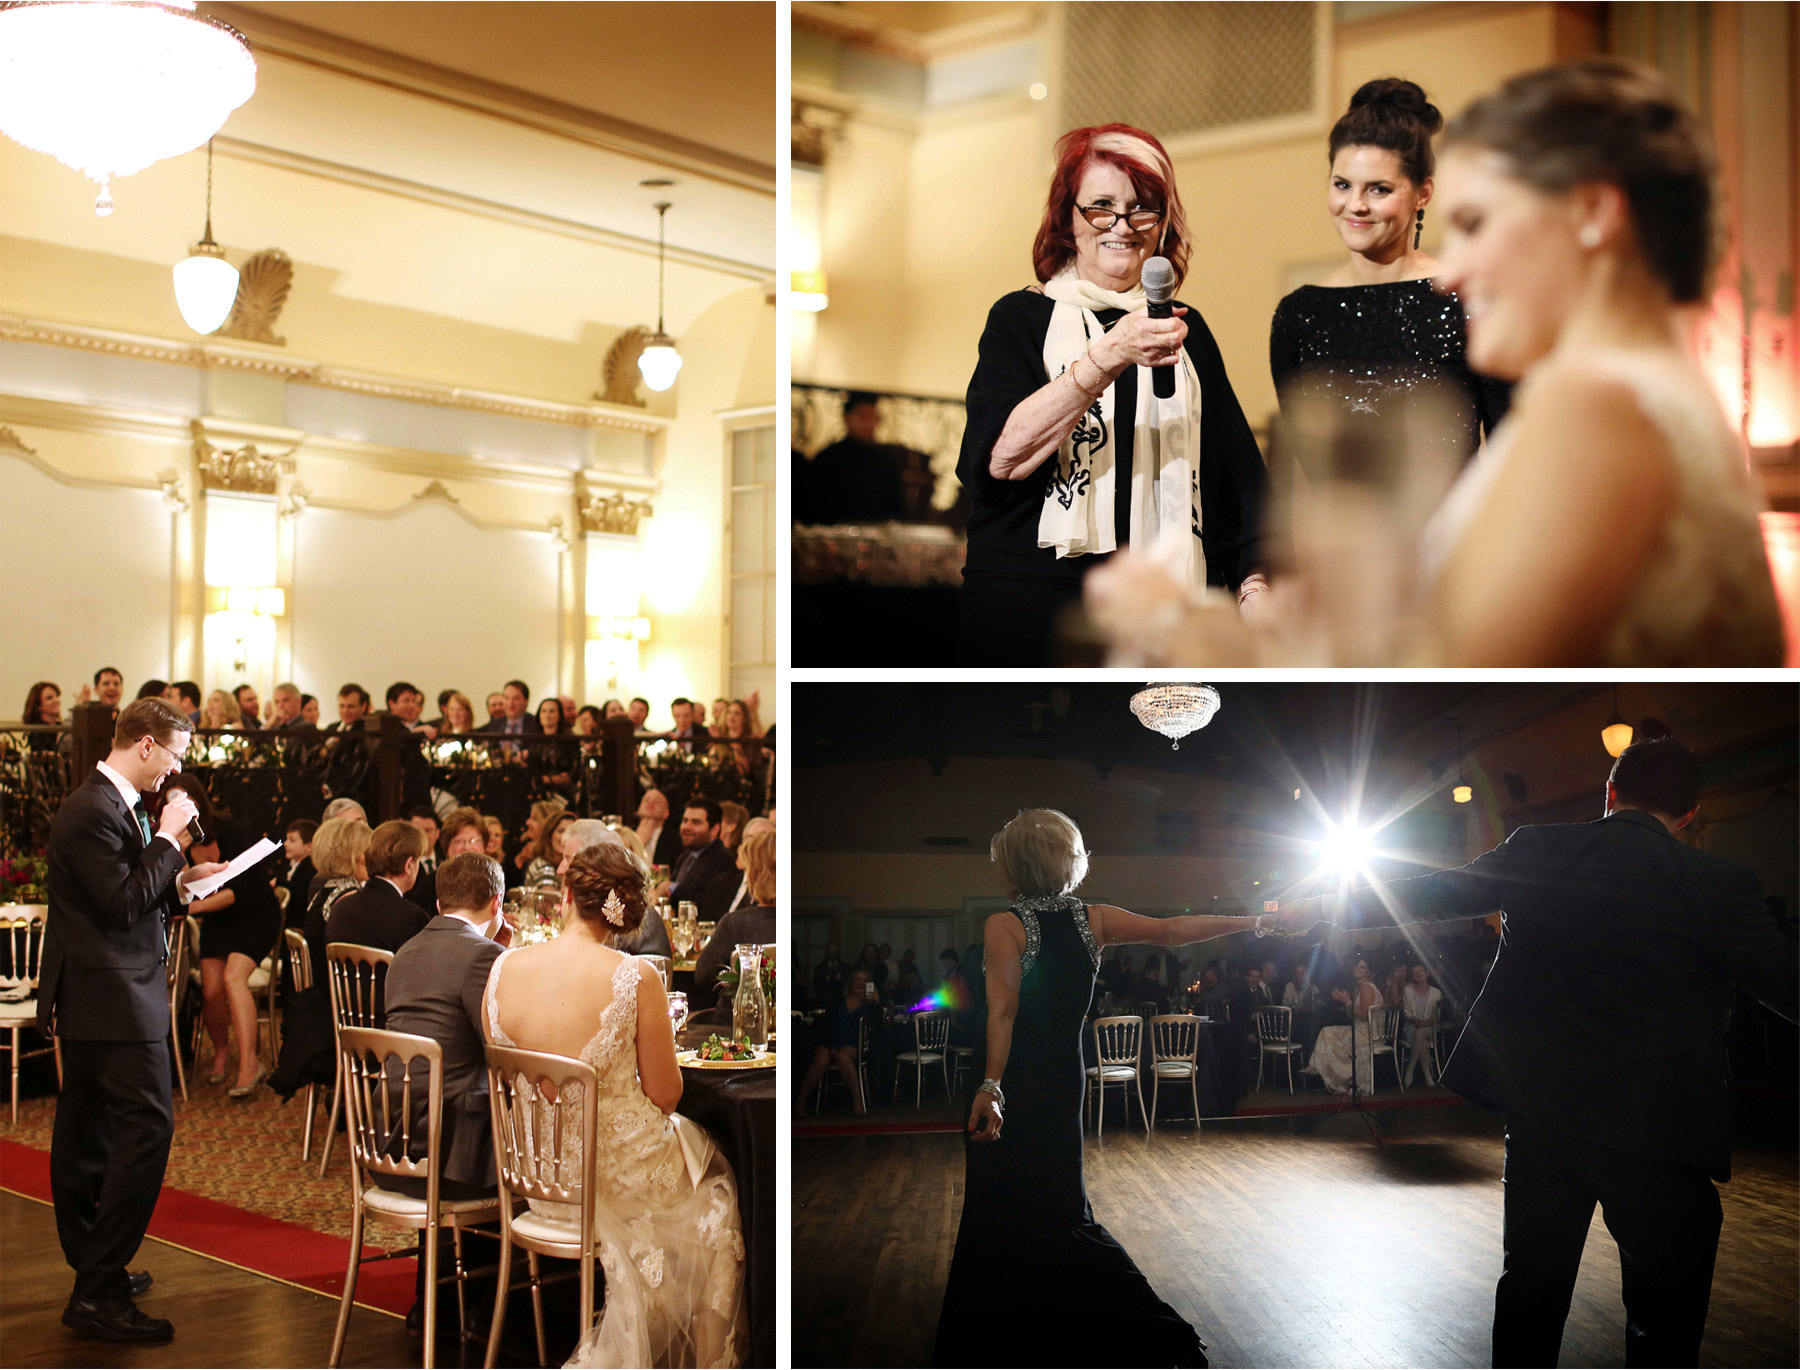 21-Chicago-Illinois-Wedding-Photographer-by-Andrew-Vick-Photography-Winter-Stan-Mansion-Reception-Bride-Groom-Groomsmen-Guests-Speeches-Mother-Dance-Colleen-and-Mike.jpg